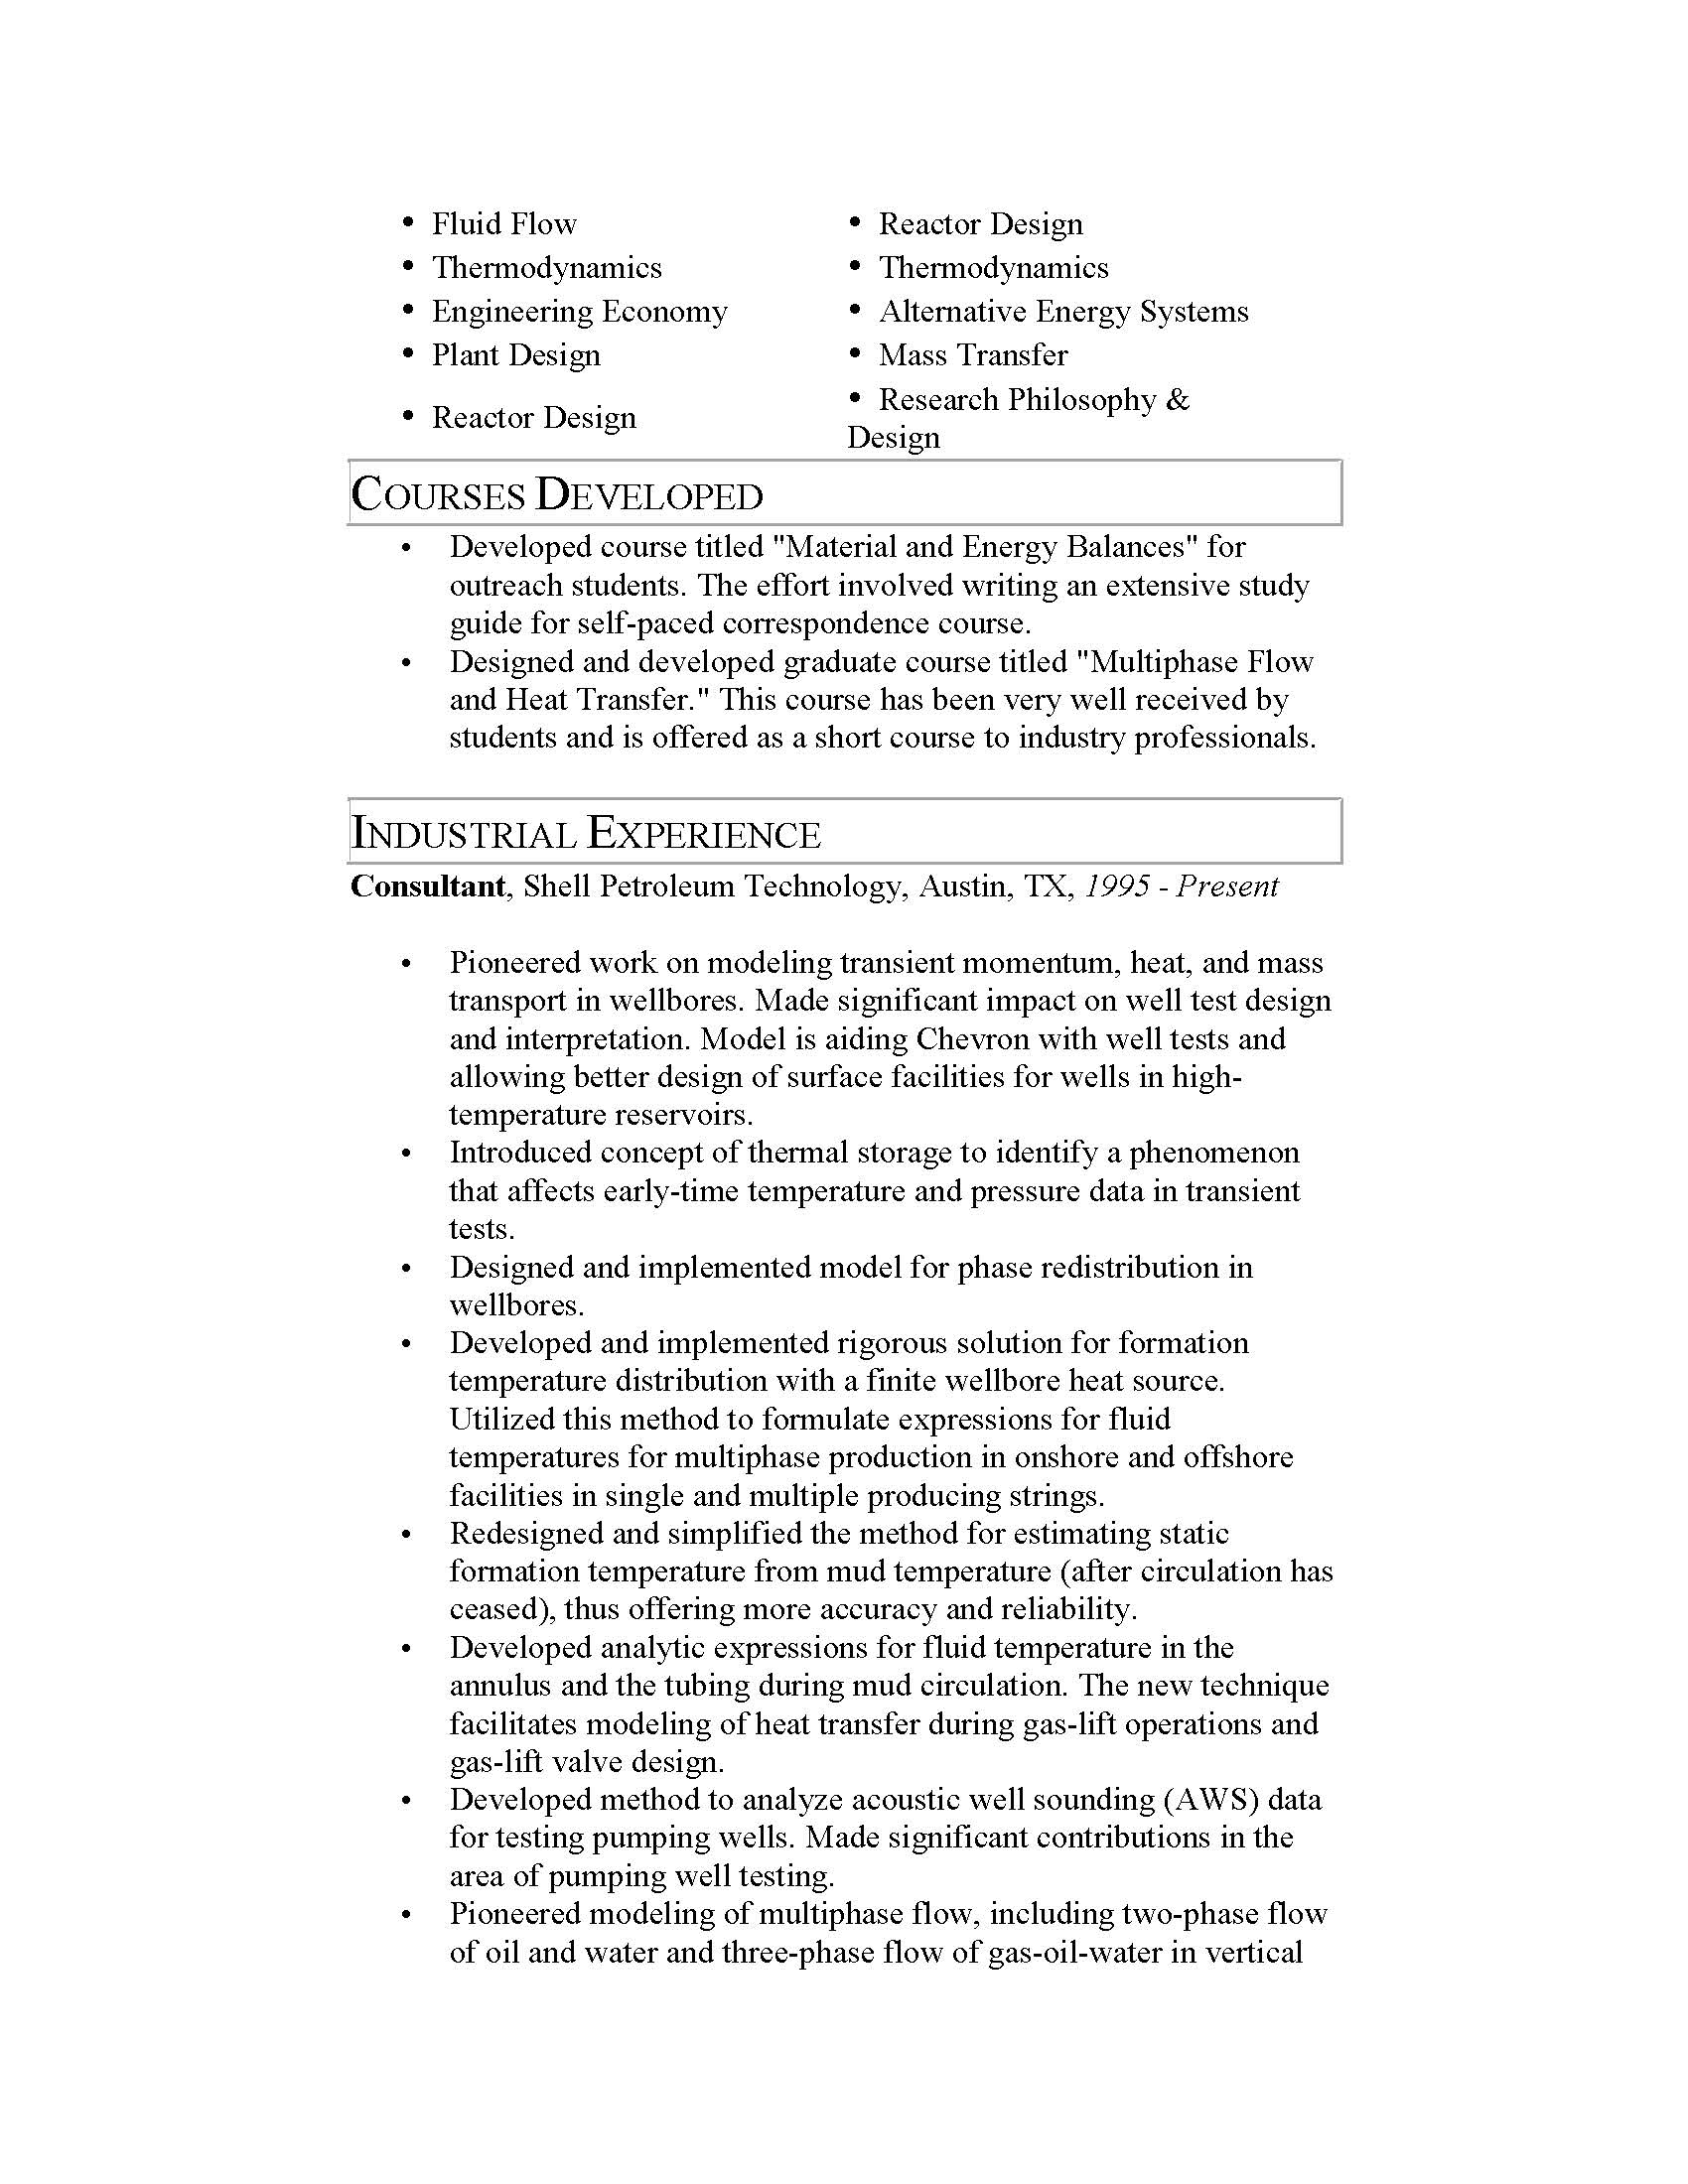 Resumes and cover letters - The Ohio State University Alumni Association